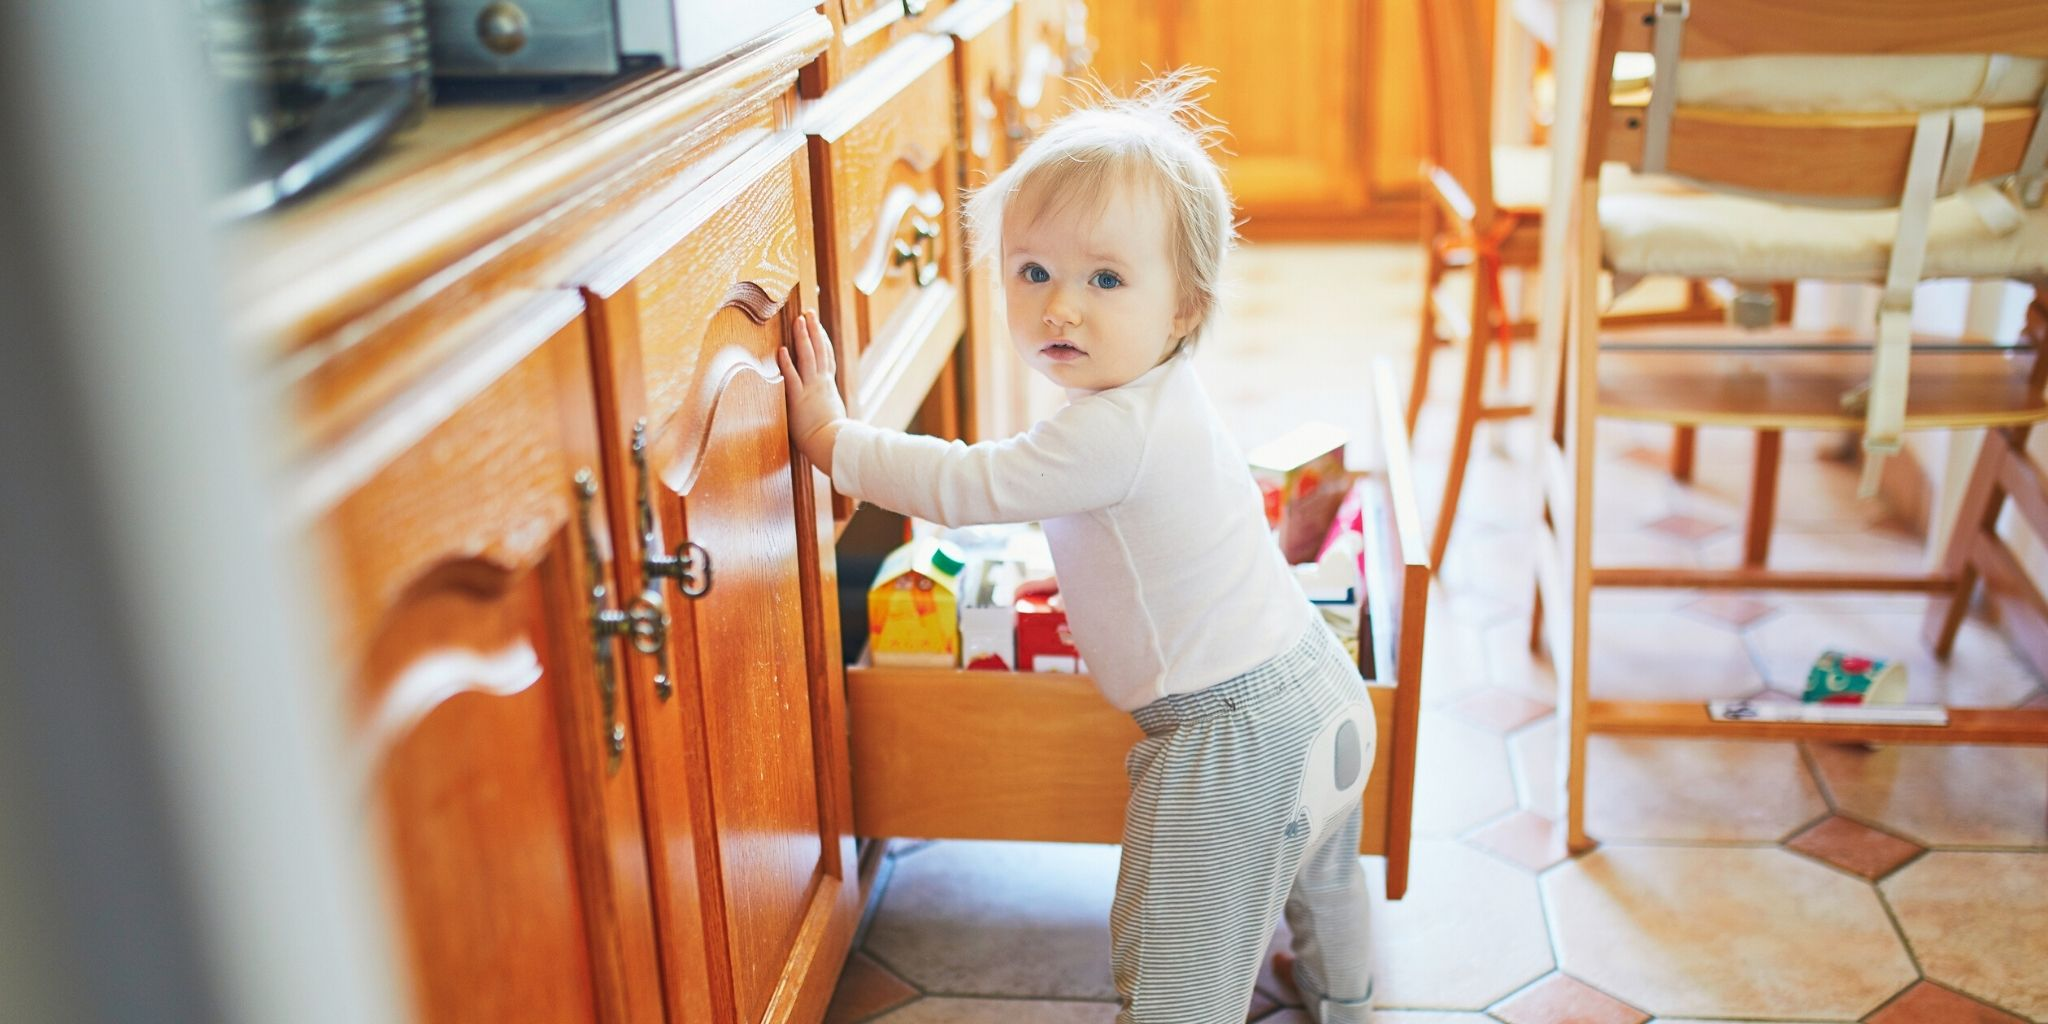 Childproof home checklist: how to keep your child safe